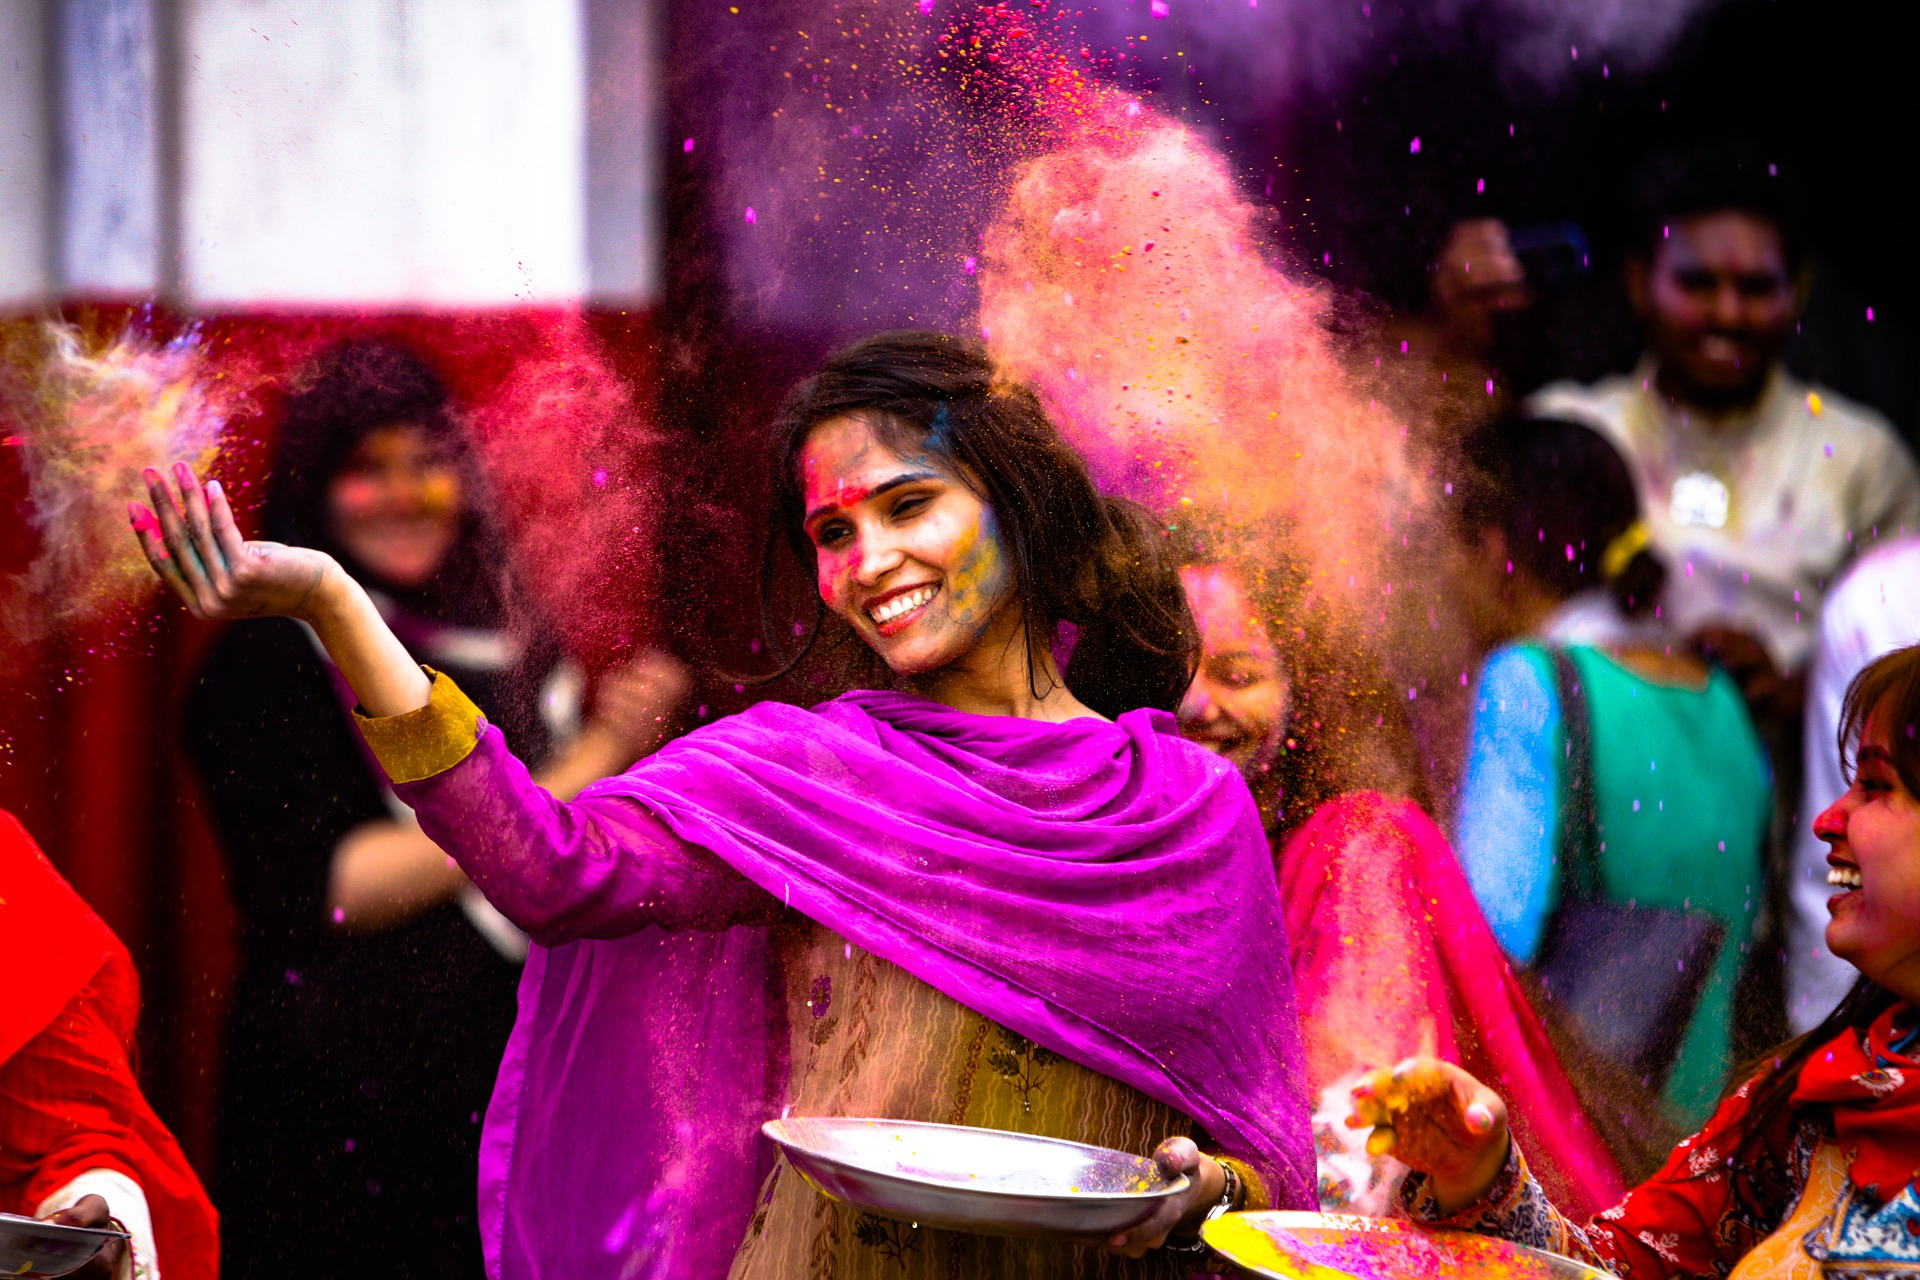 The Nowa Huta Cultural Centre will host a celebration of Holi, the Indian festival of colours, on Friday